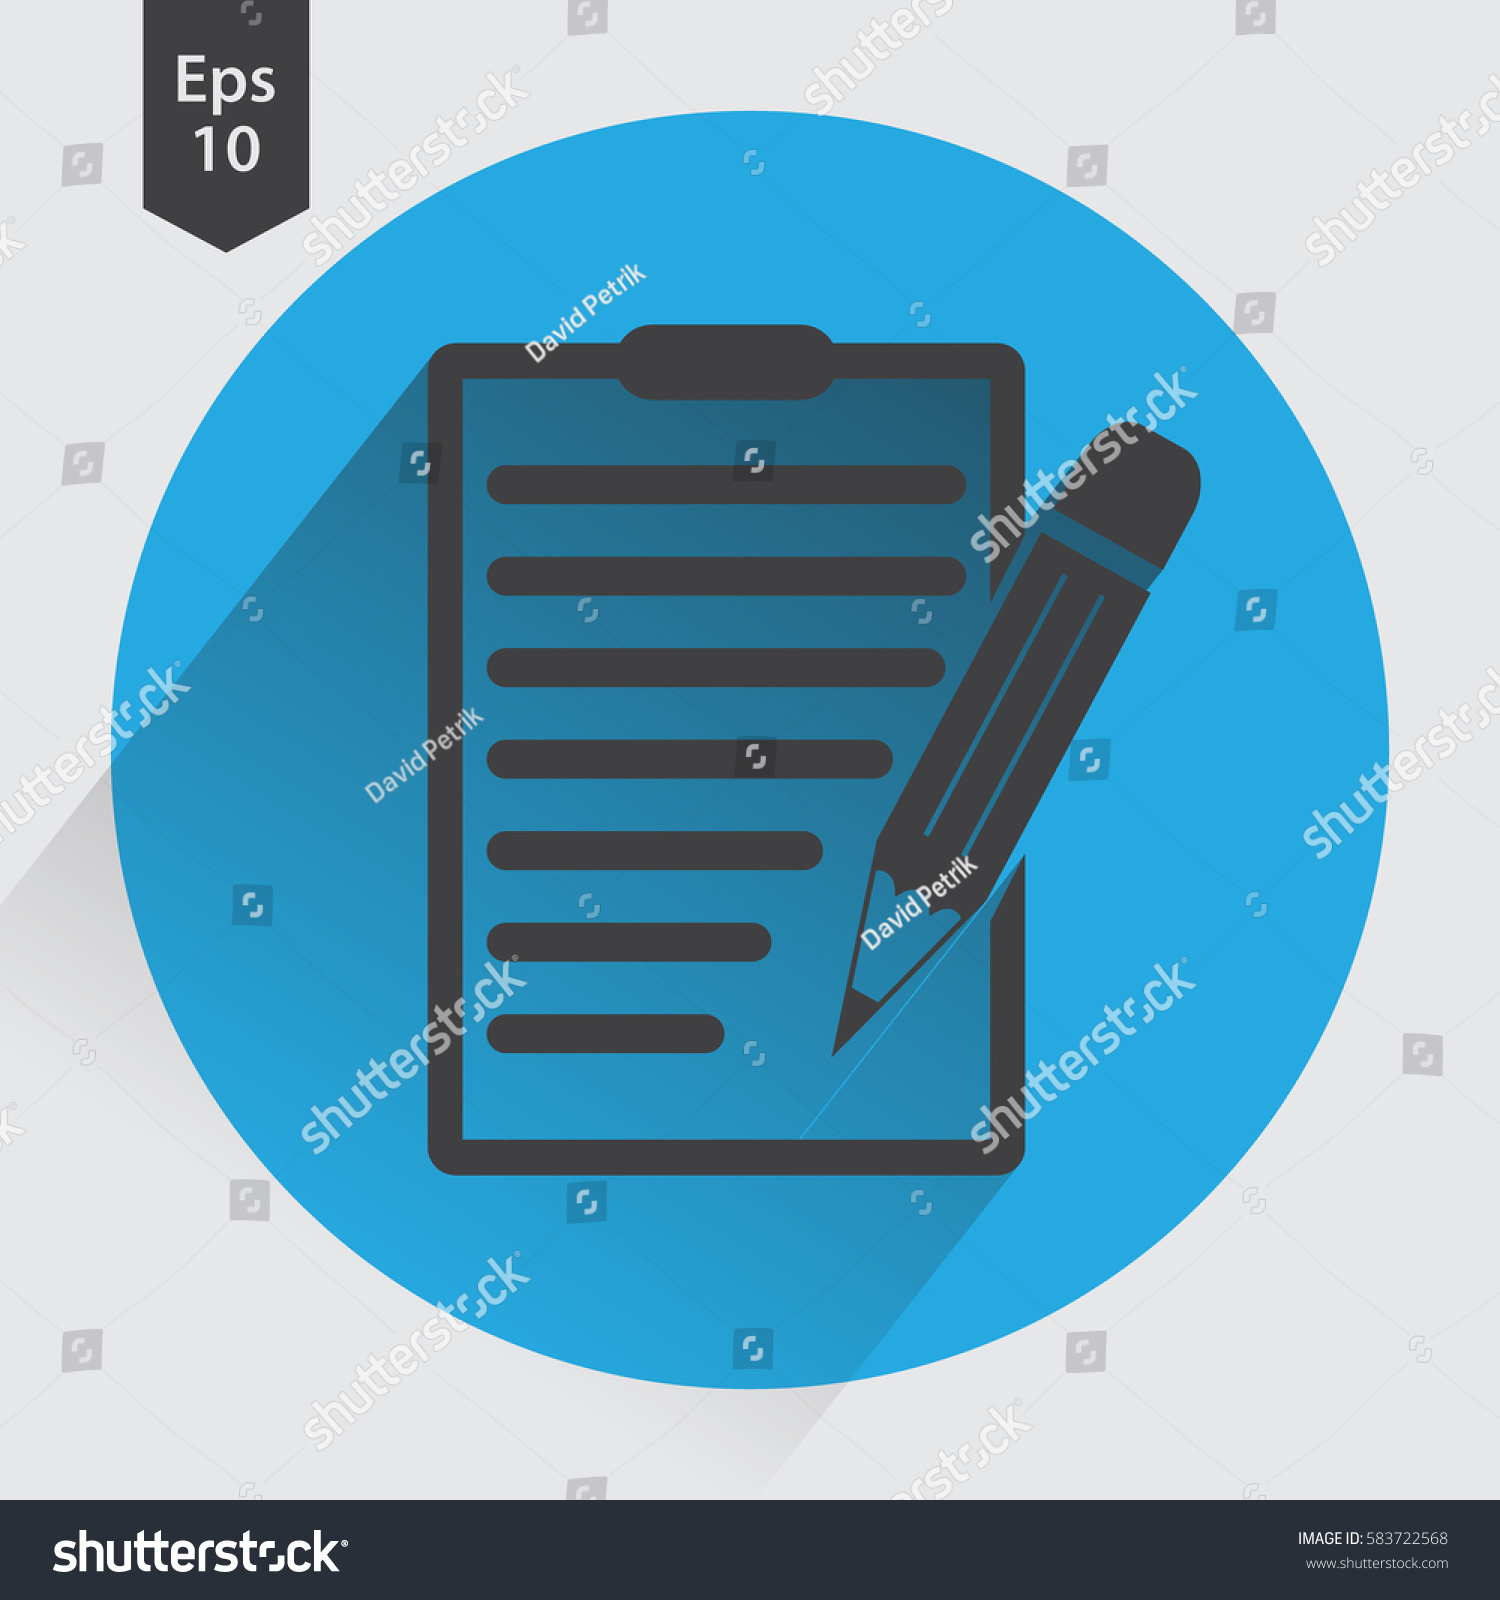 Notepad symbol simple flat icon paper stock vector 583722568 notepad symbol simple flat icon of paper and pen notebook with some text biocorpaavc Choice Image